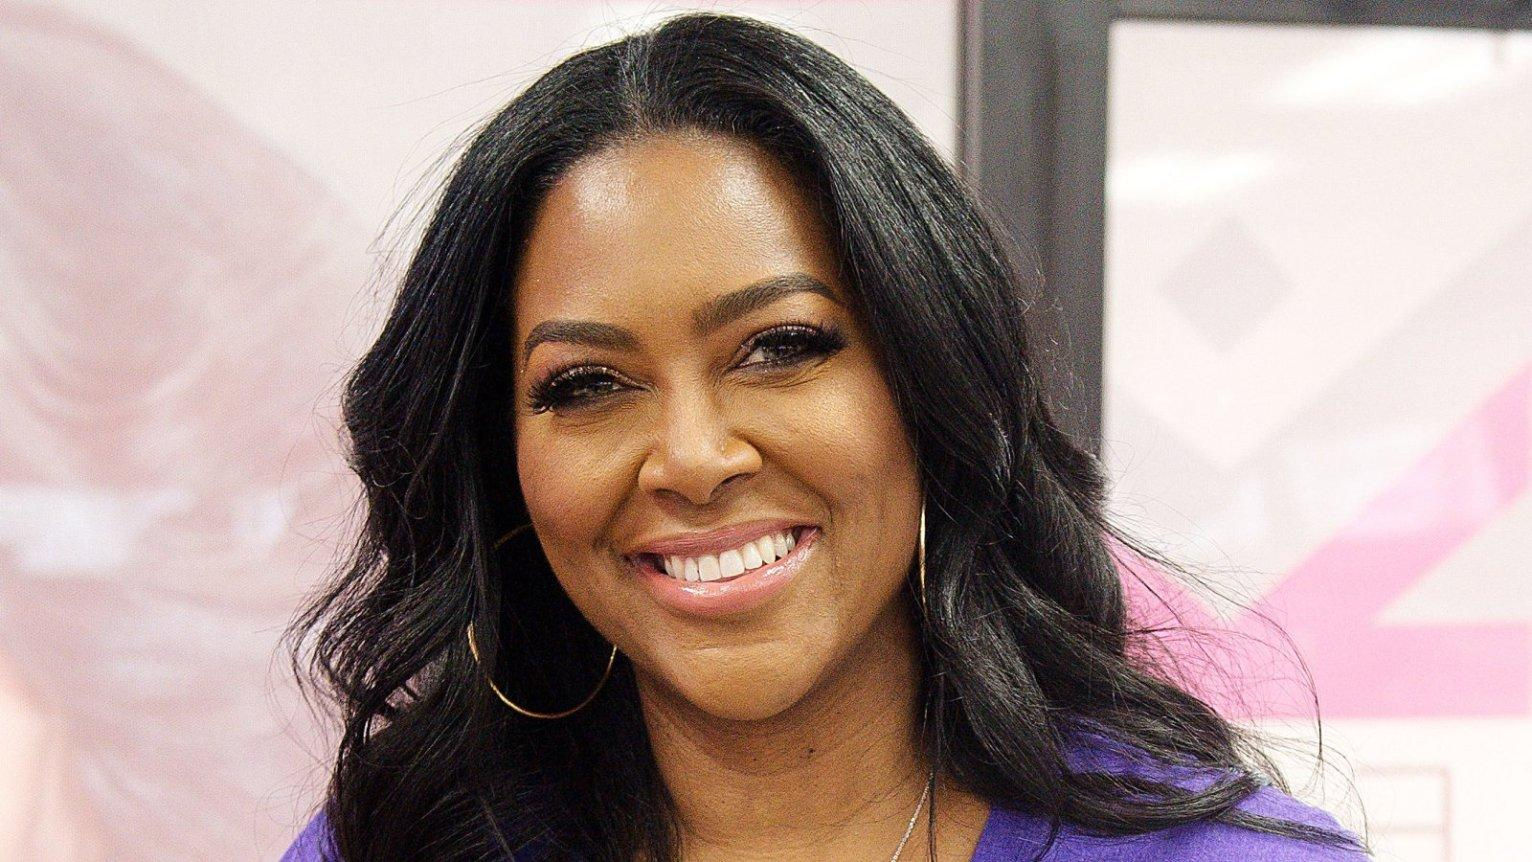 Kenya Moore's Fans Cannot Be Happier To Have Her Back On The RHOA Series